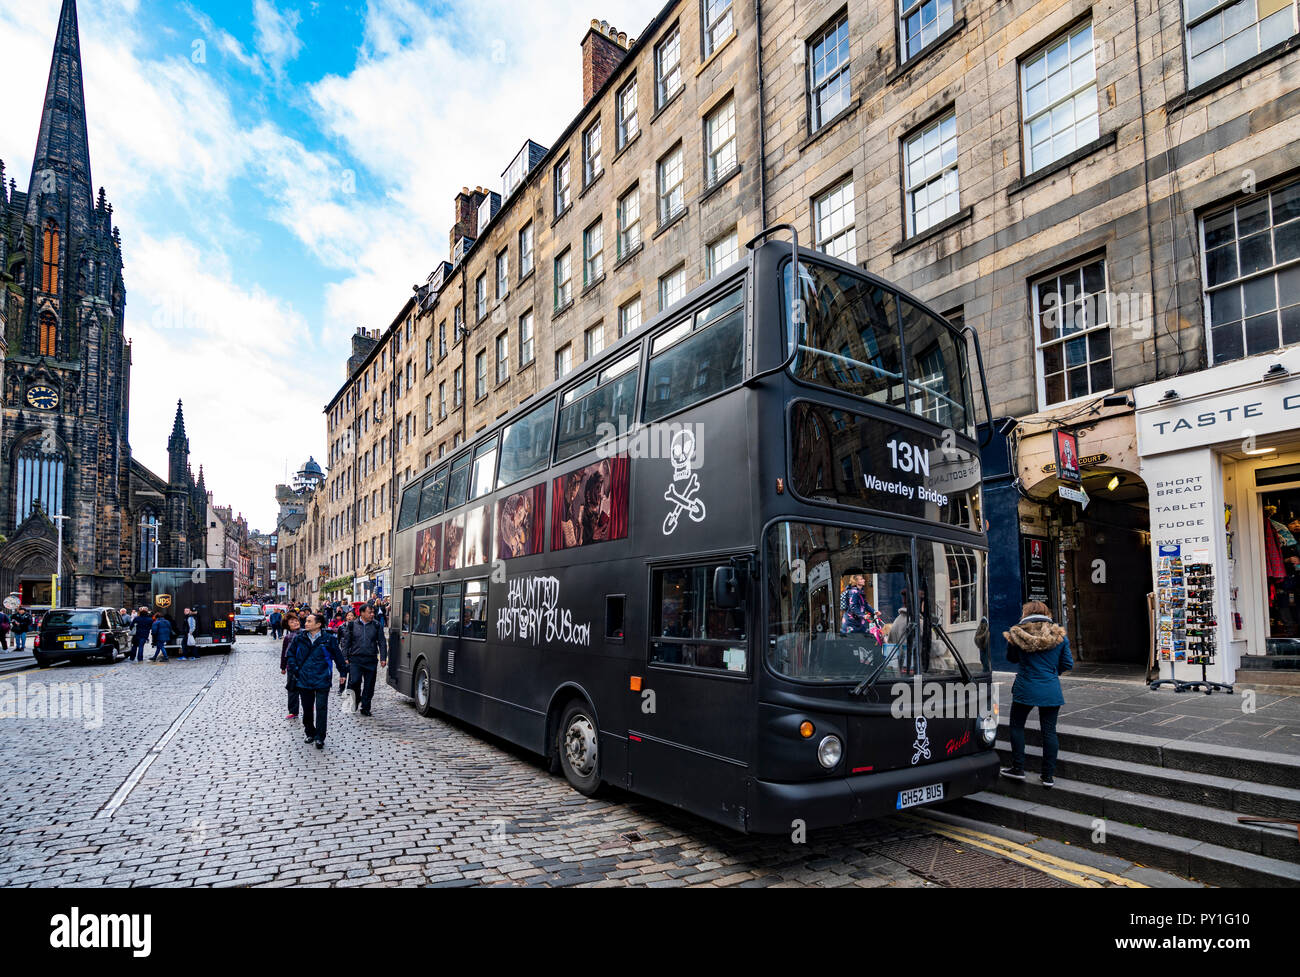 Tourist ghost tour bus parked on the Royal Mile in Edinburgh Old Town, Scotland, UK. Stock Photo